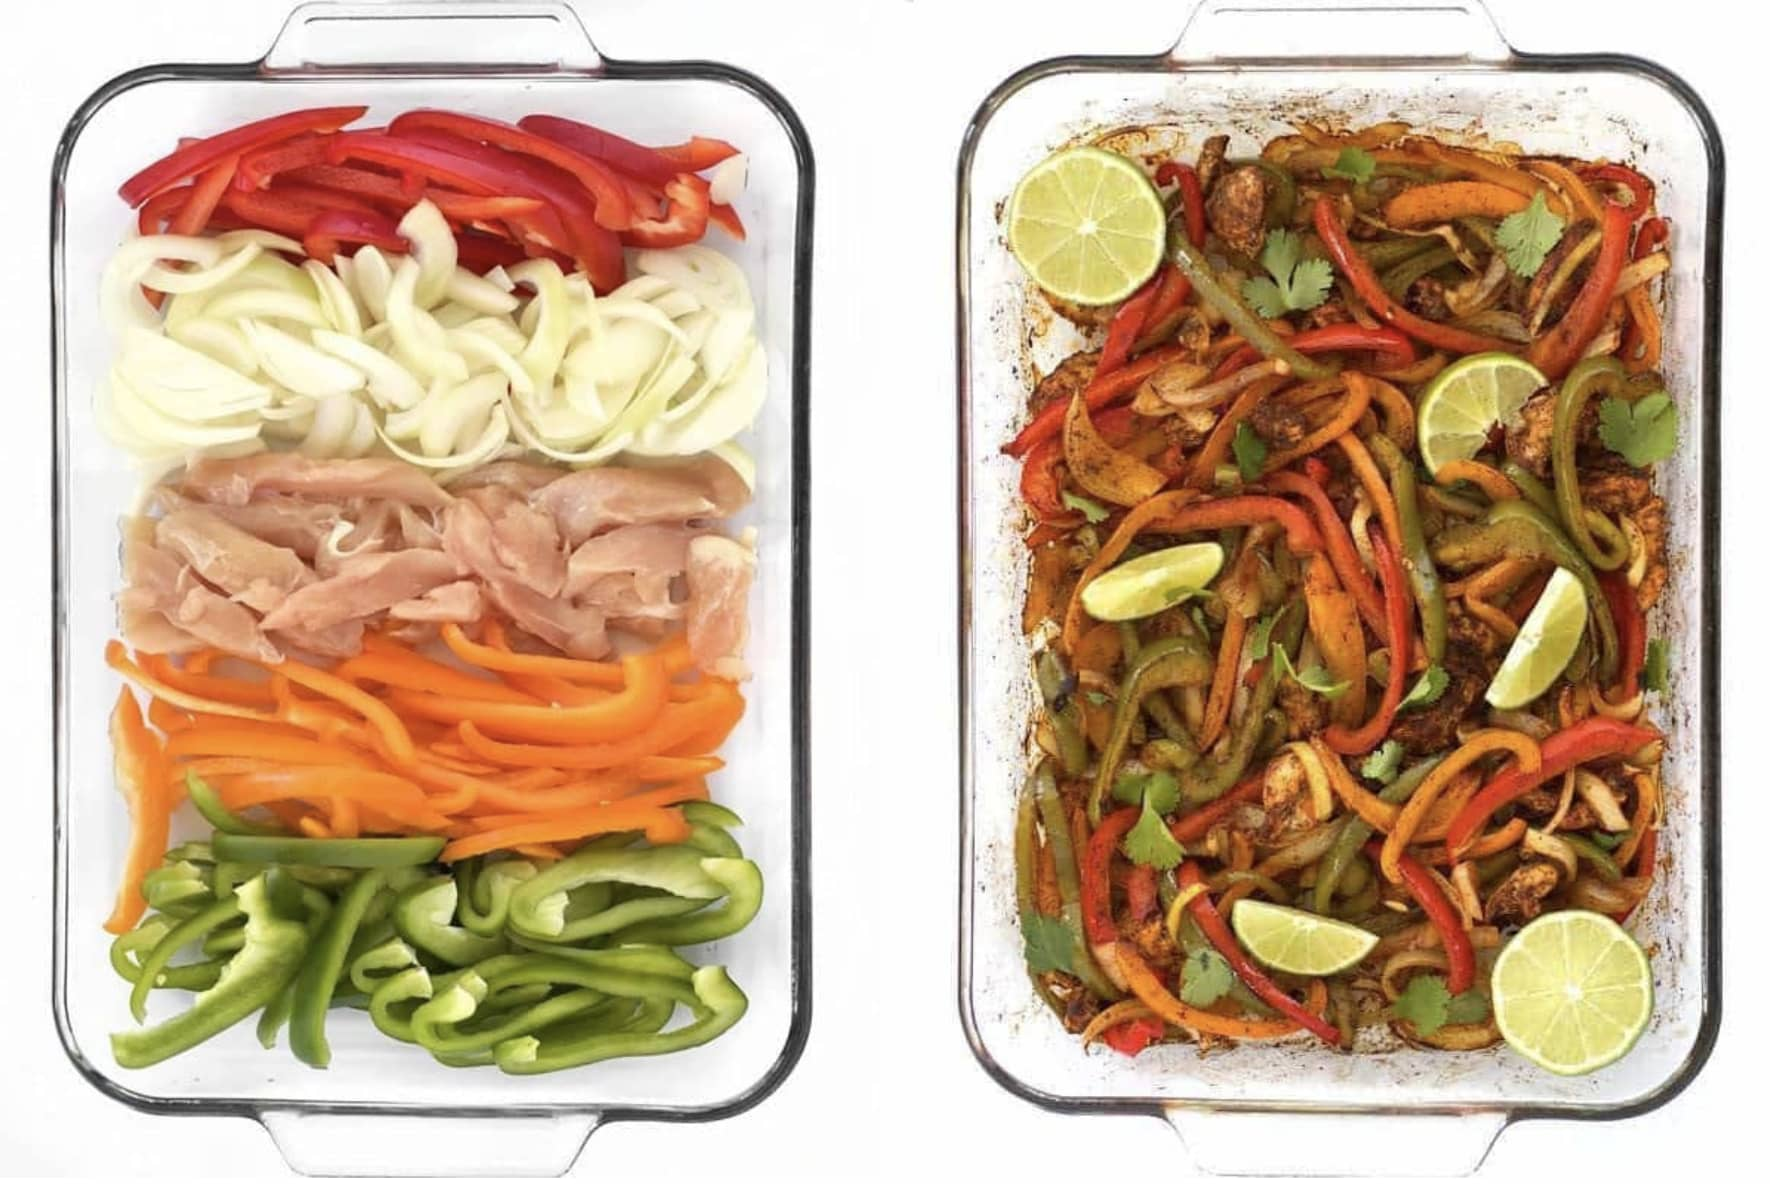 10 Easy Low-Carb Dinners That'll Cost You Less than $10